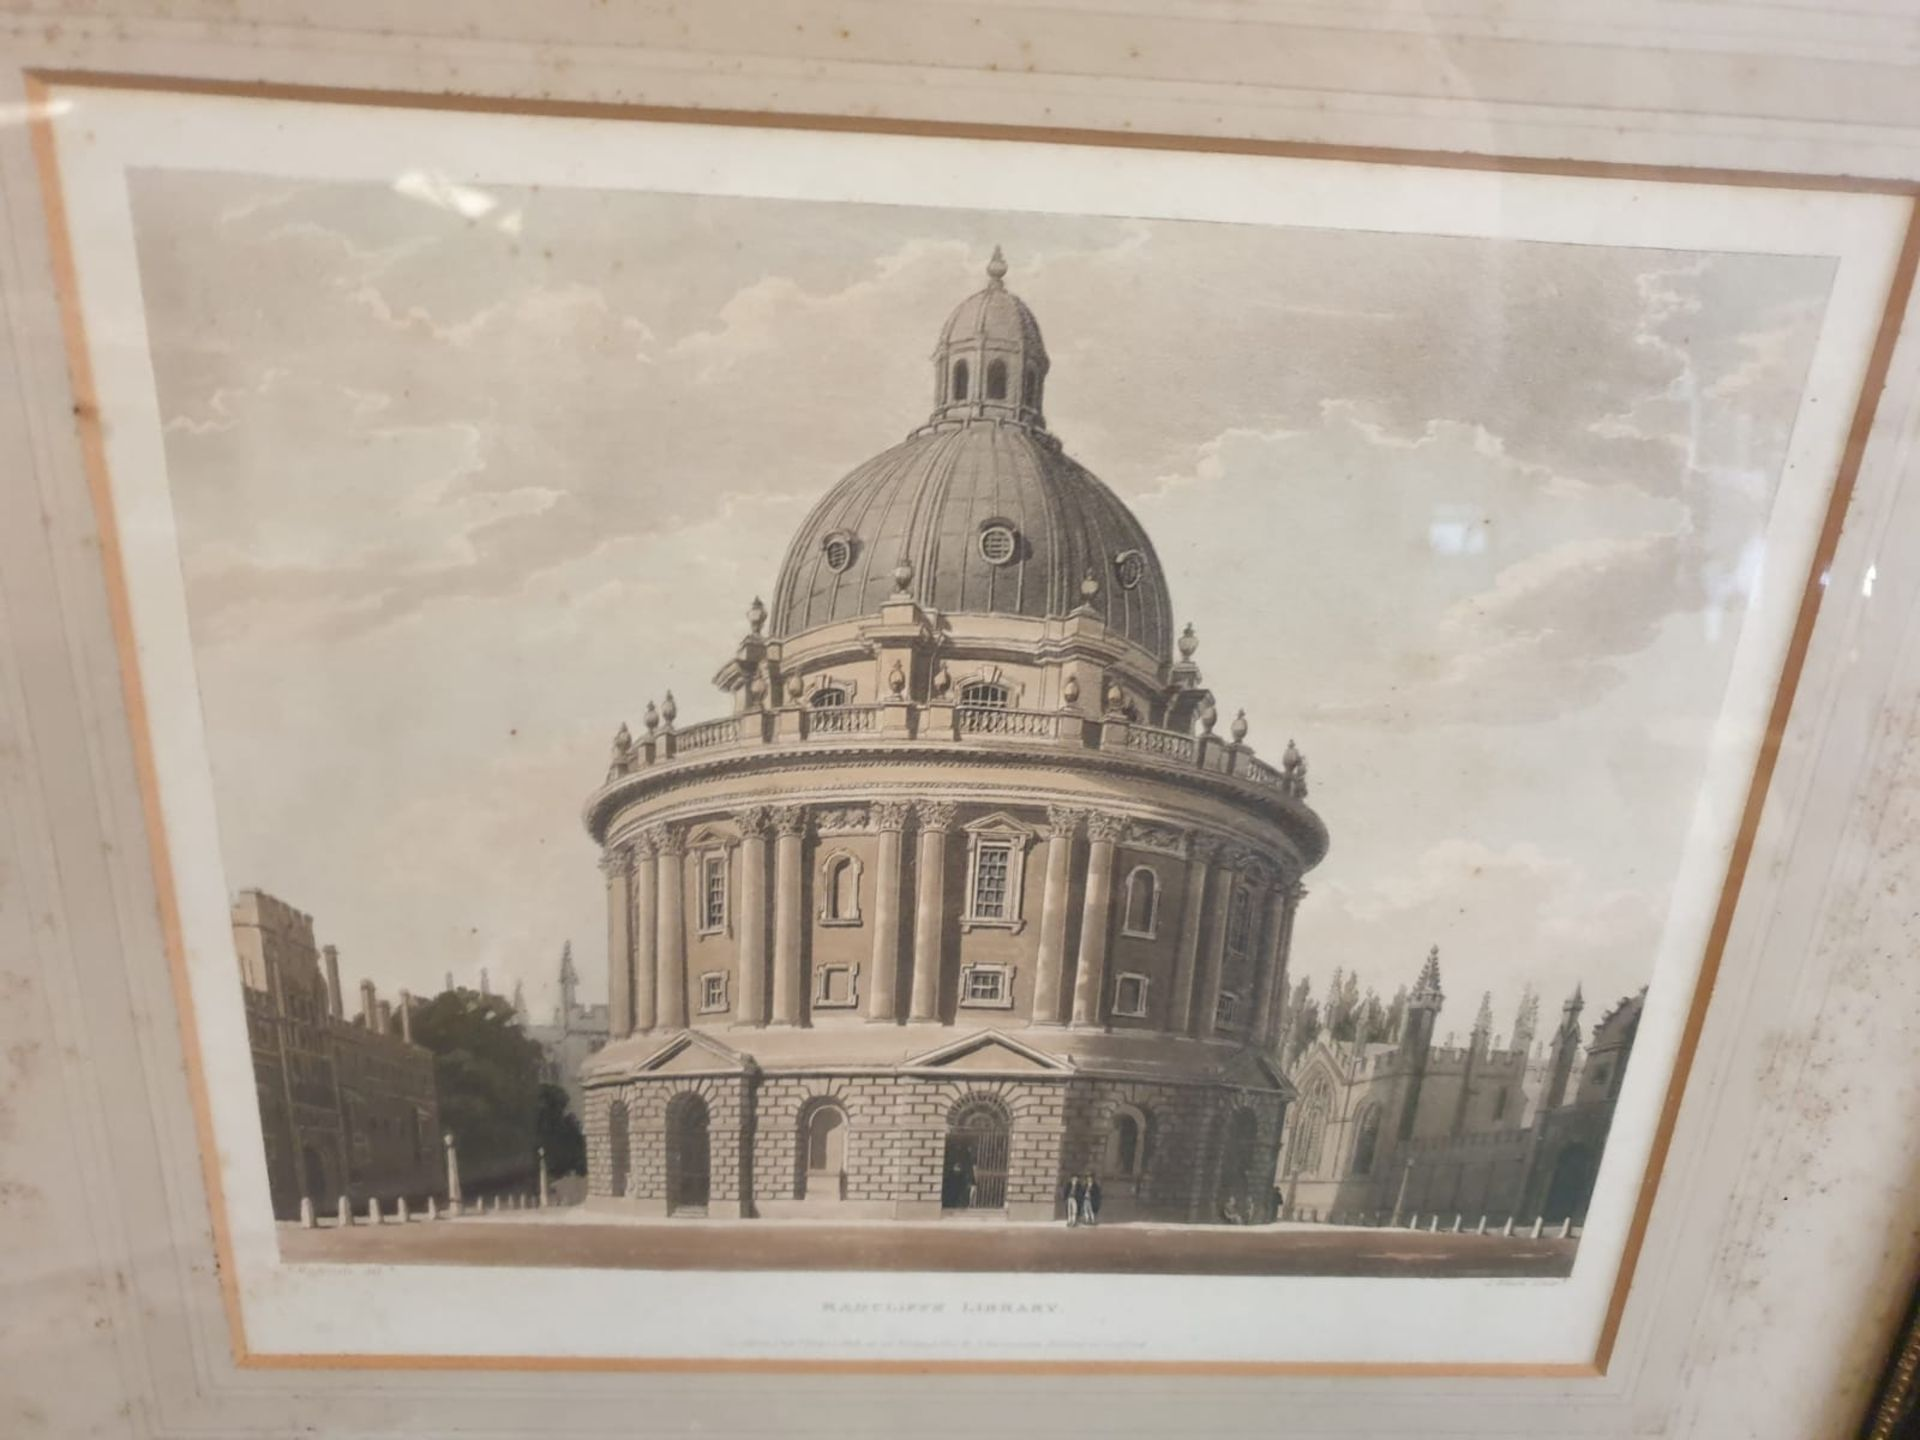 A set of 2 framed Coloured prints Radcliffe Library Oxford and Christchurch library Oxford F C Lewis - Image 5 of 5